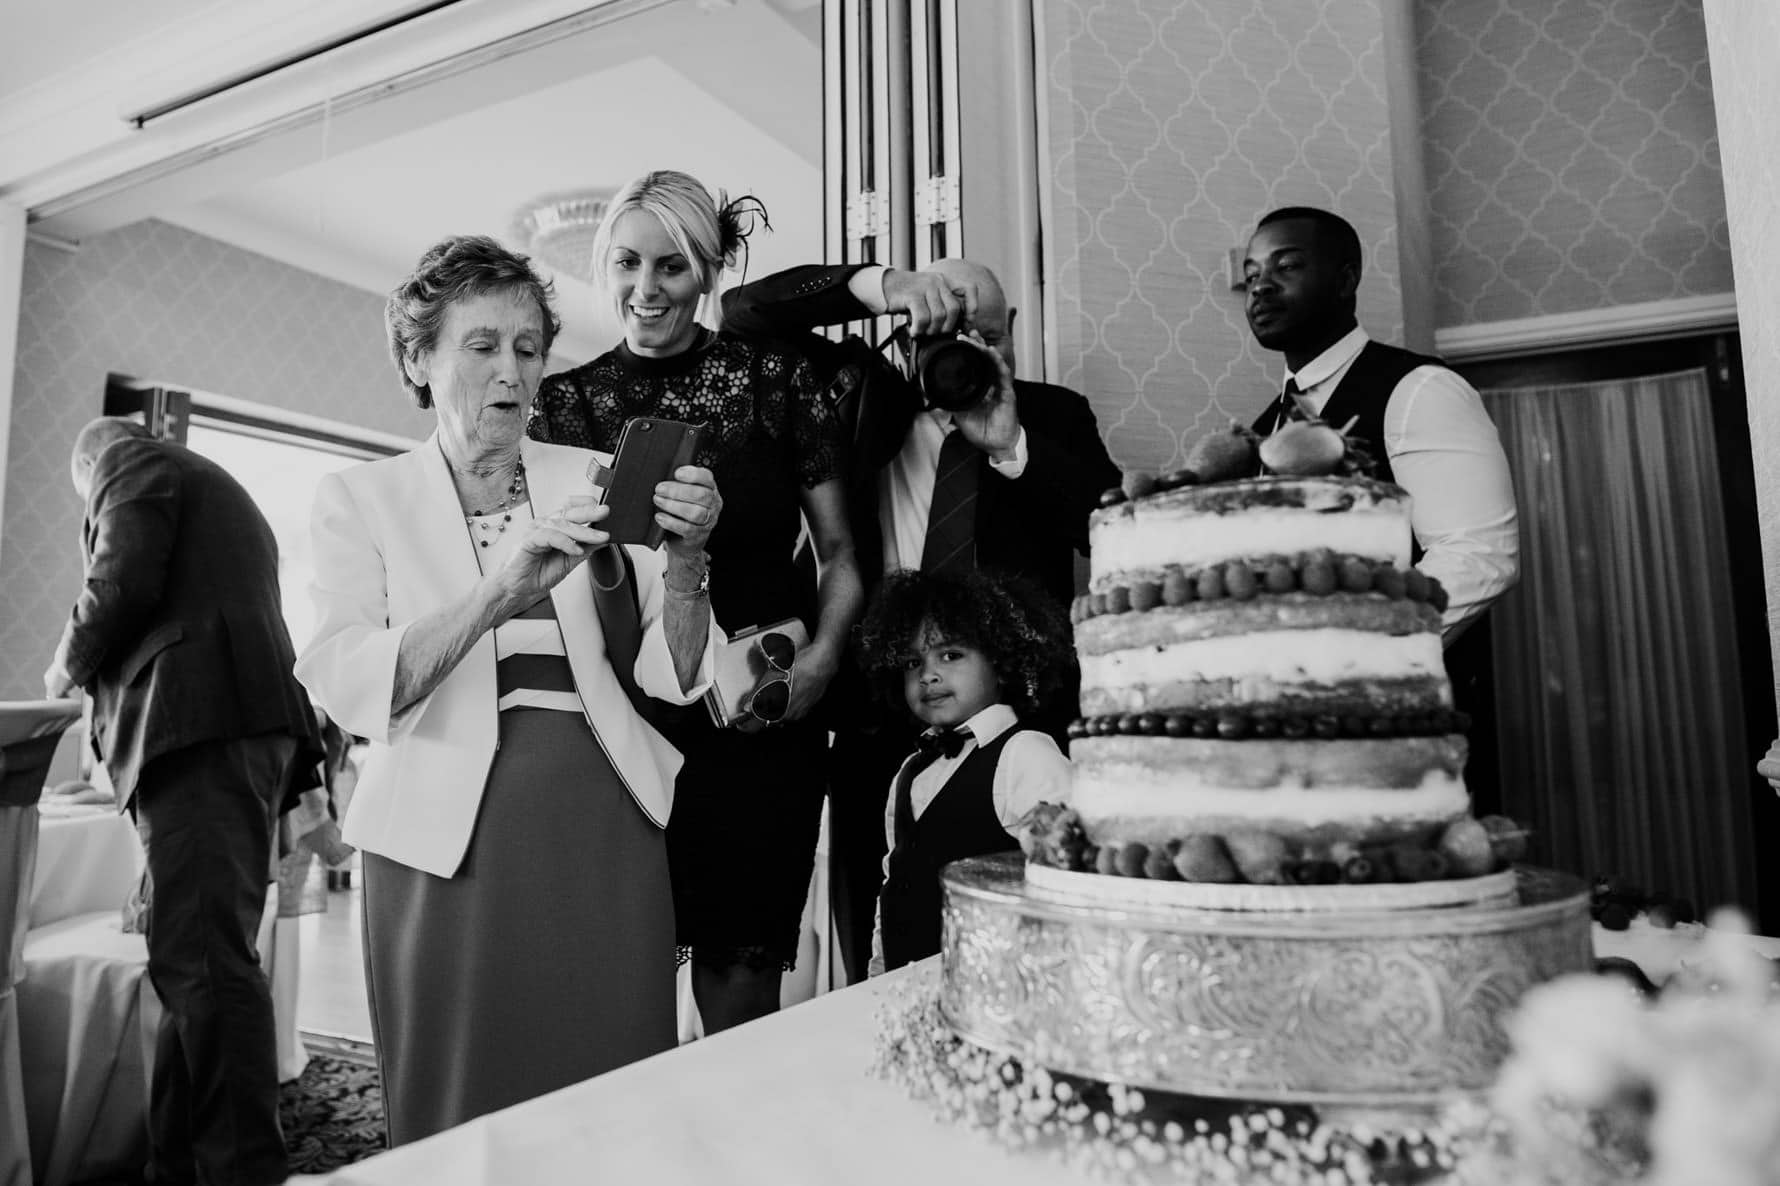 wedding guests admiring the wedding cake